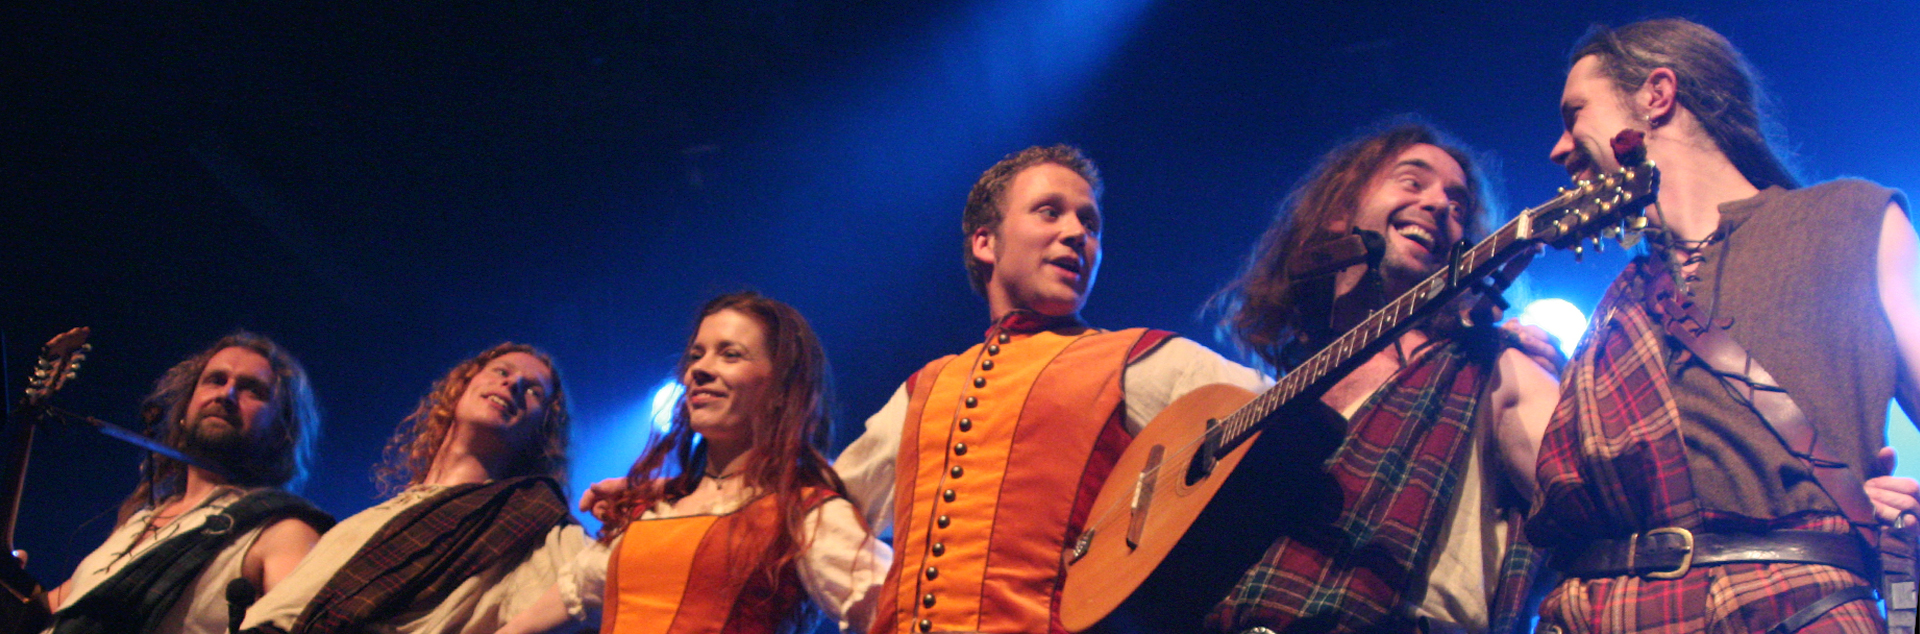 Rapalje-Celtic-Folk-Music-live-show